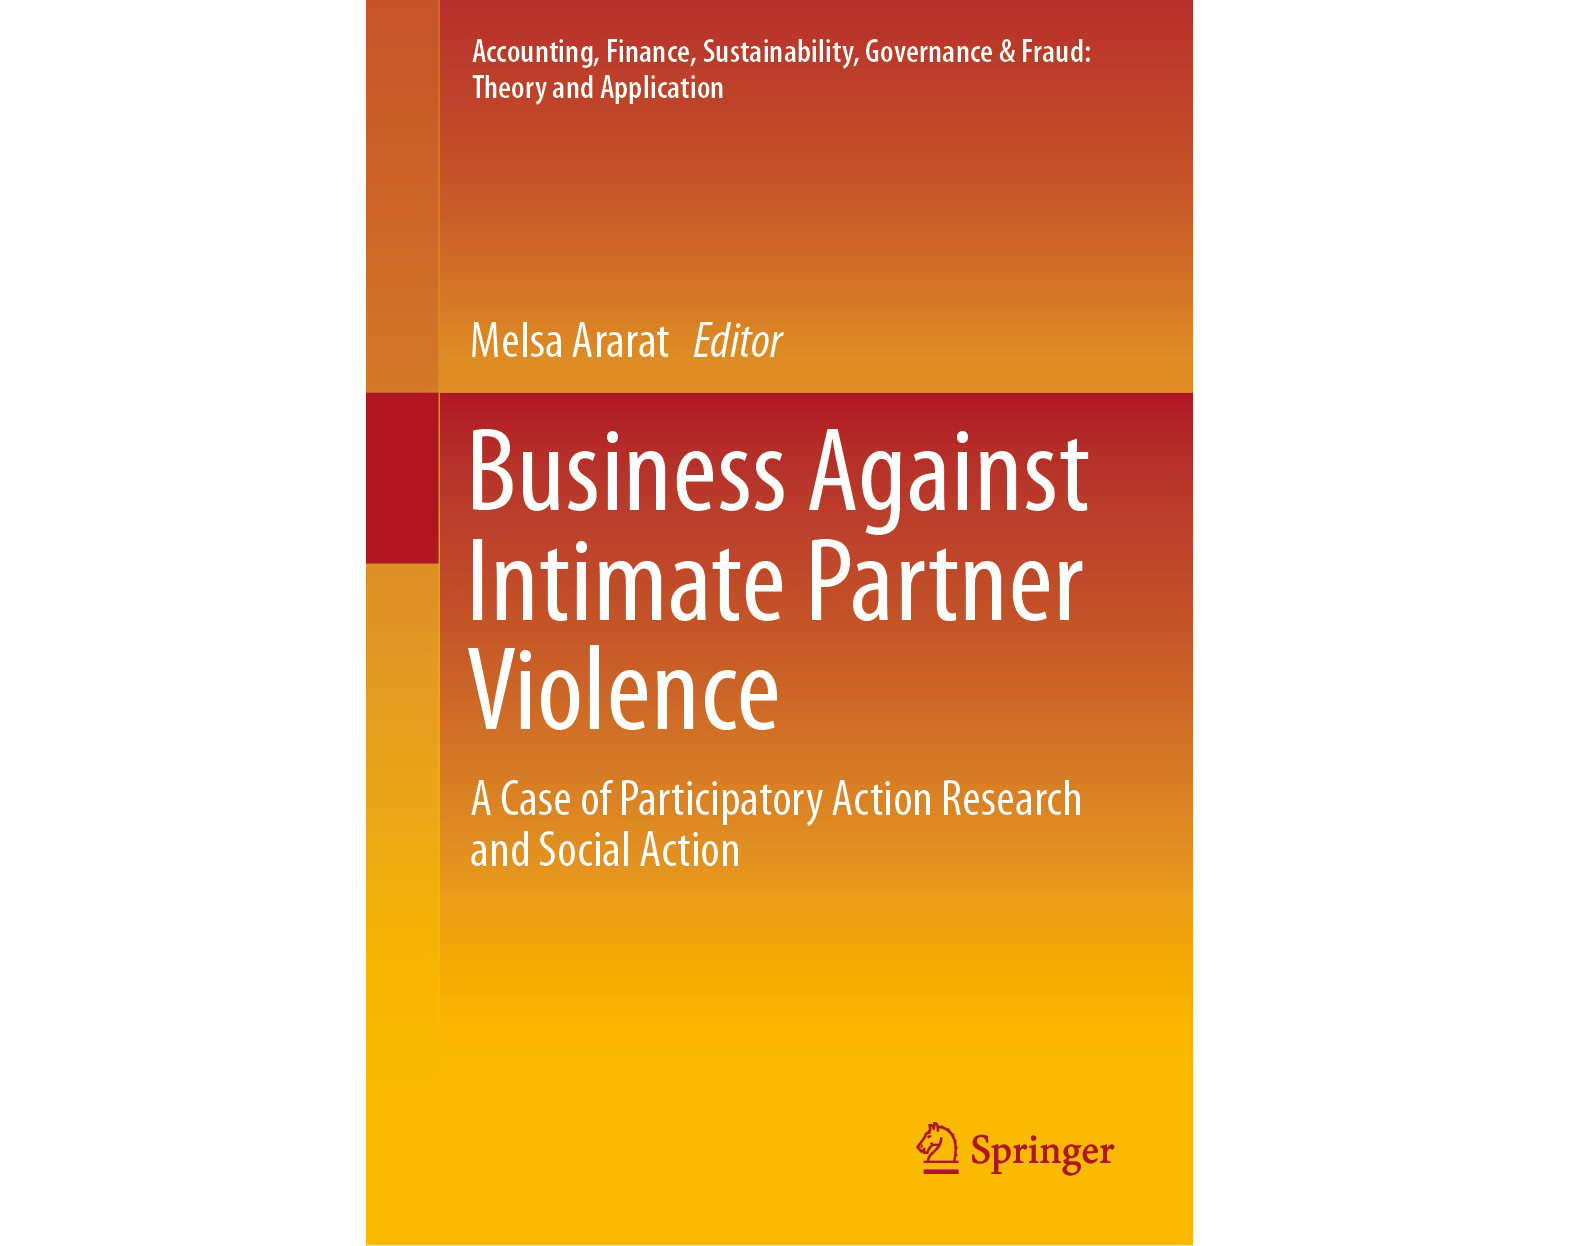 Business Against Intimate Partner Violence/A Case of Participatory Action Research and Social